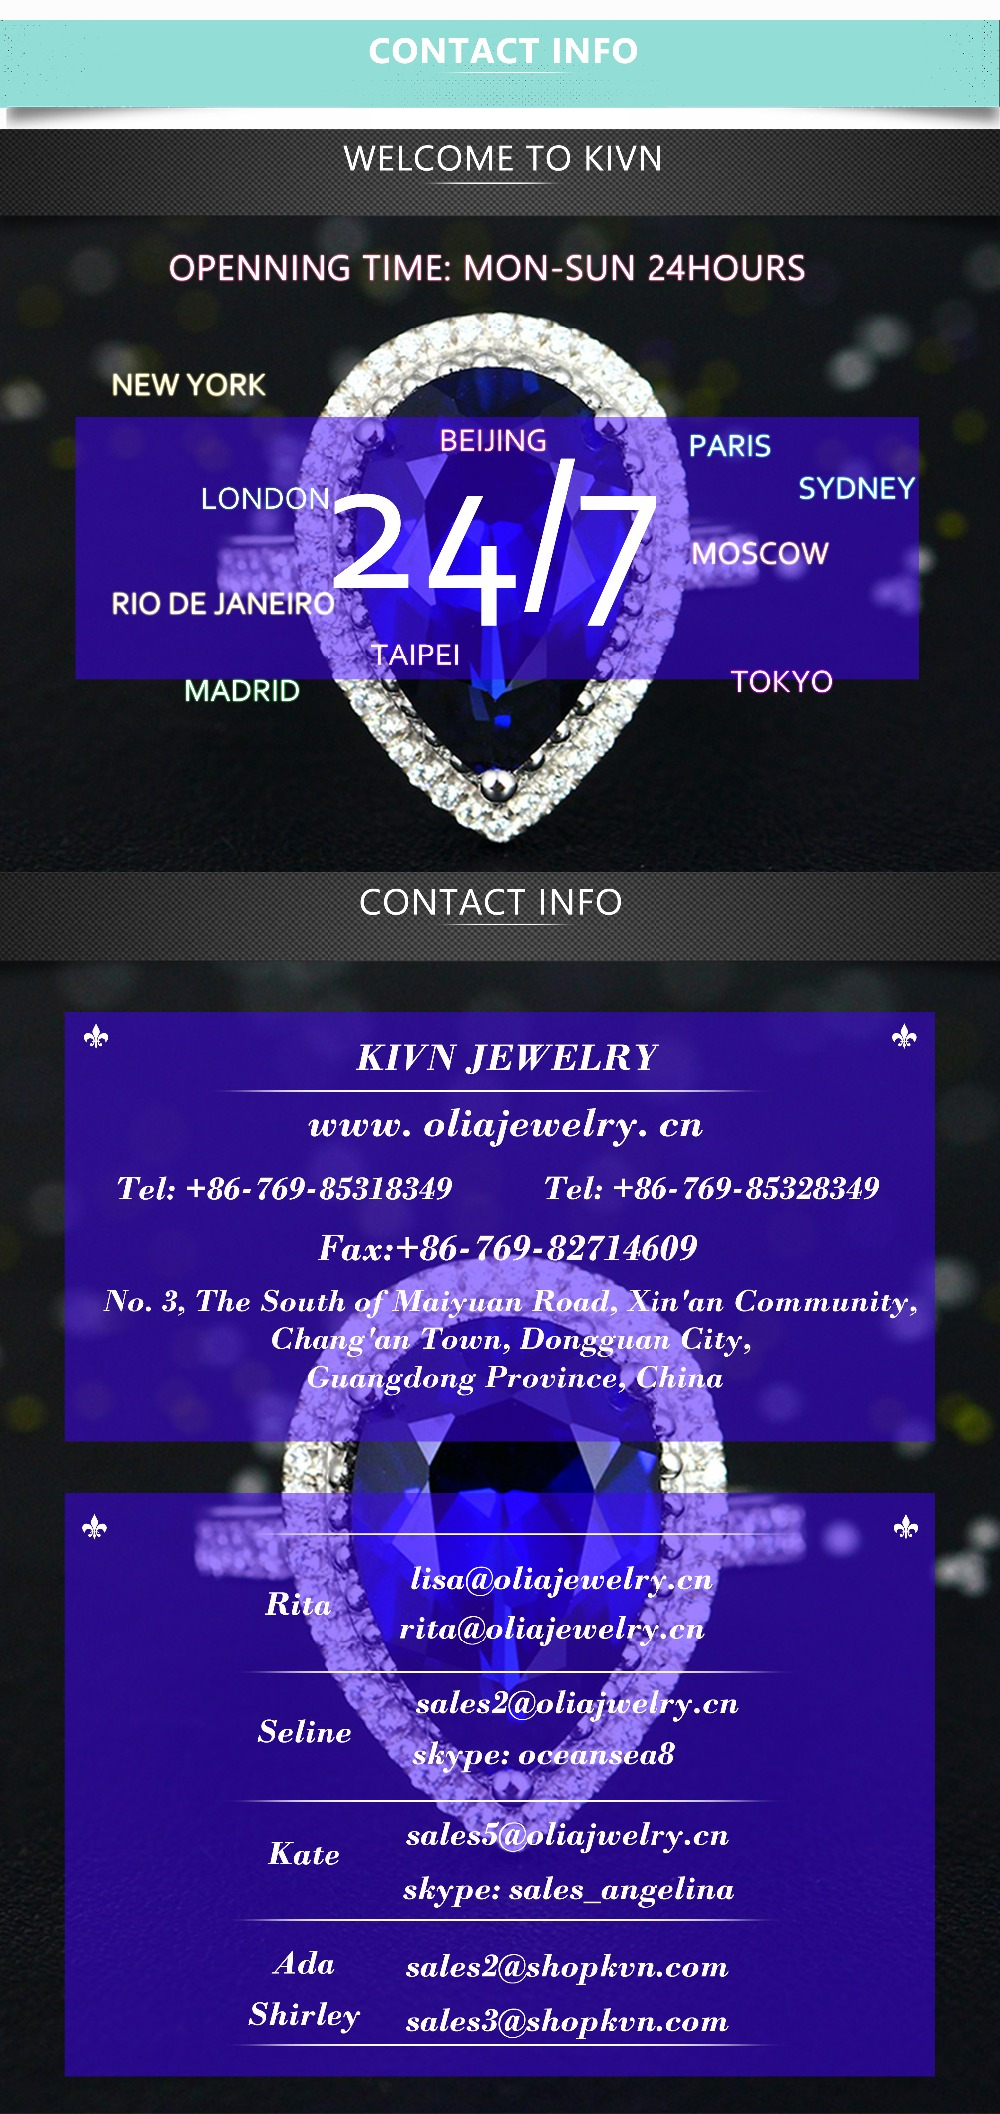 7Contact Info